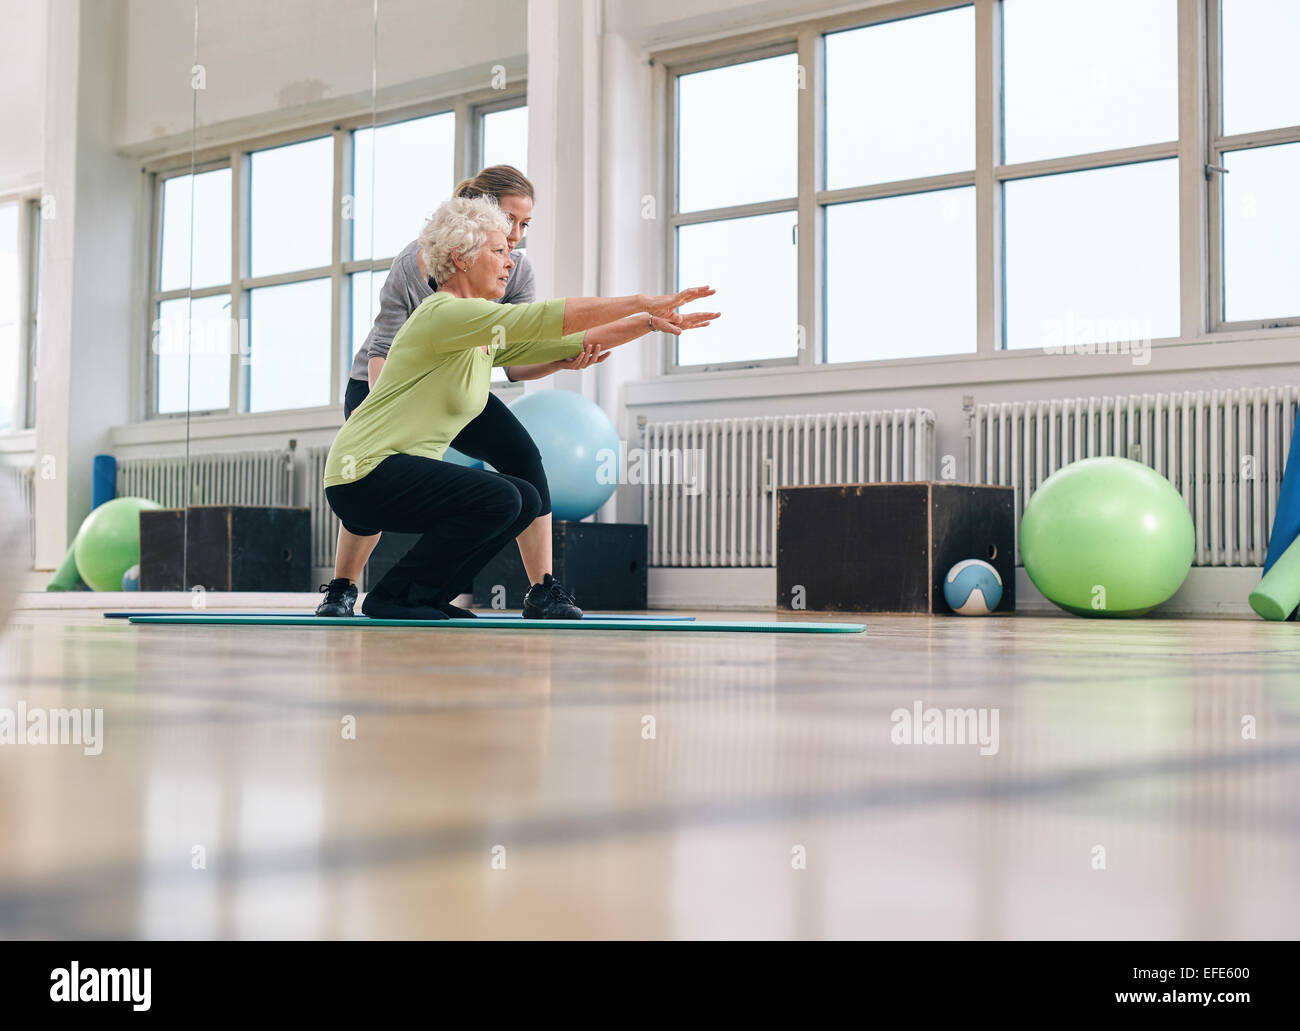 Senior woman doing exercise with her personal trainer at gym. Gym instructor assisting elder woman in her workout. - Stock Image